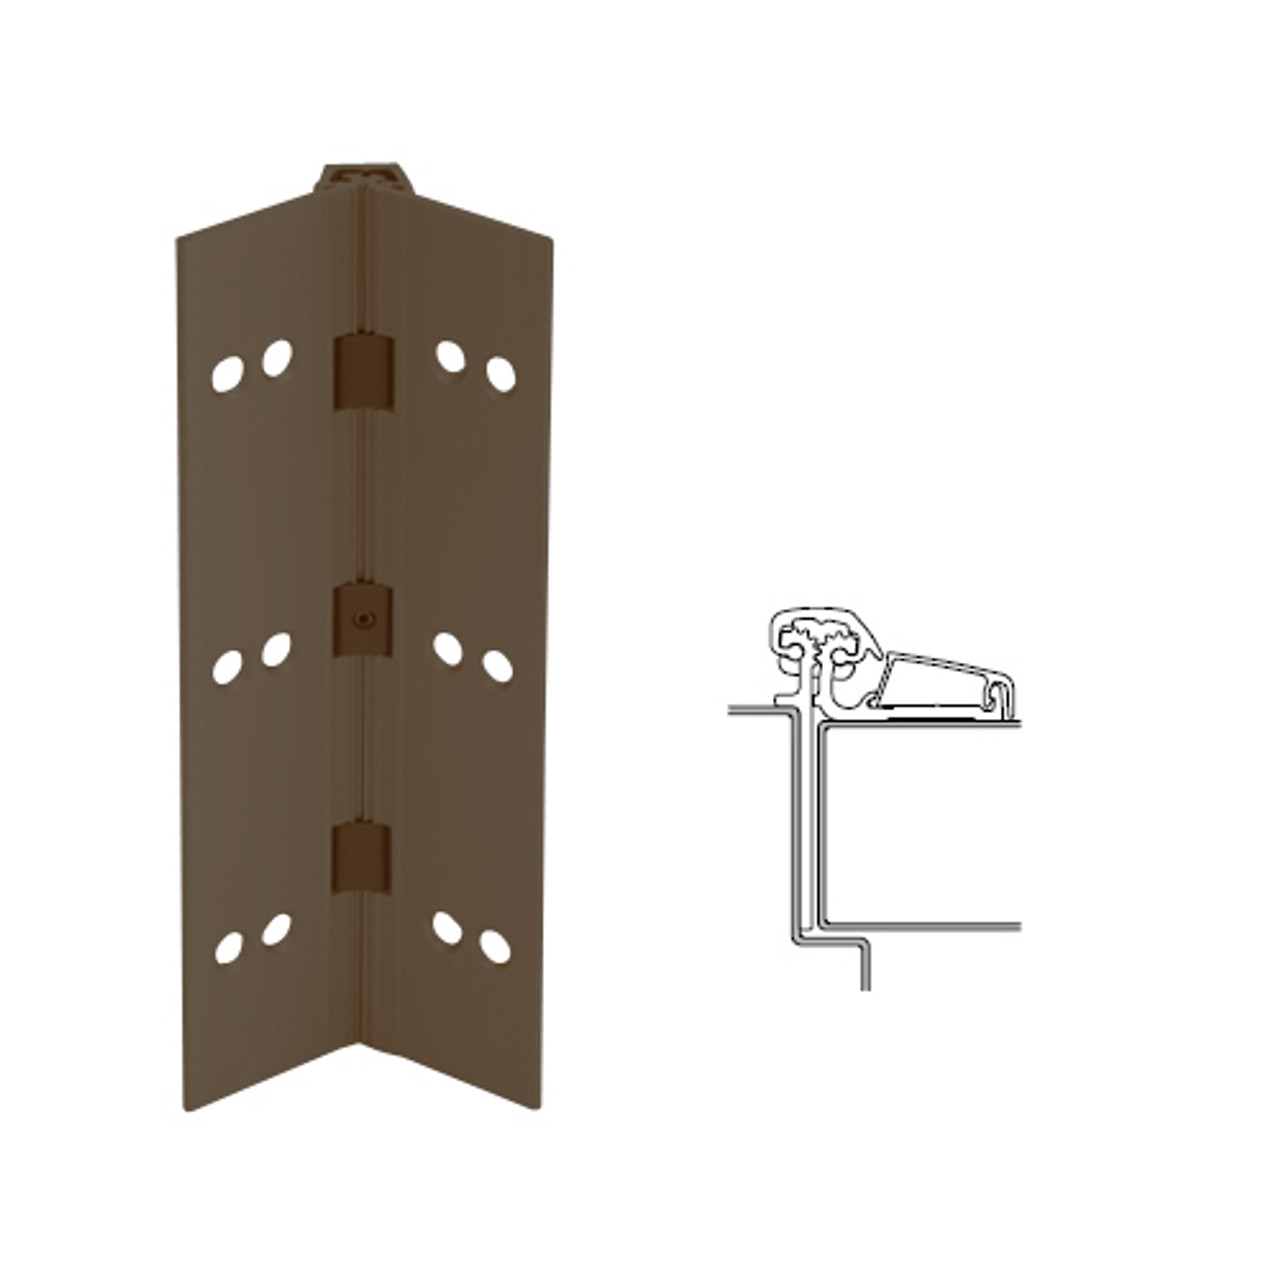 054XY-313AN-85-TEKWD IVES Adjustable Half Surface Continuous Geared Hinges with Wood Screws in Dark Bronze Anodized